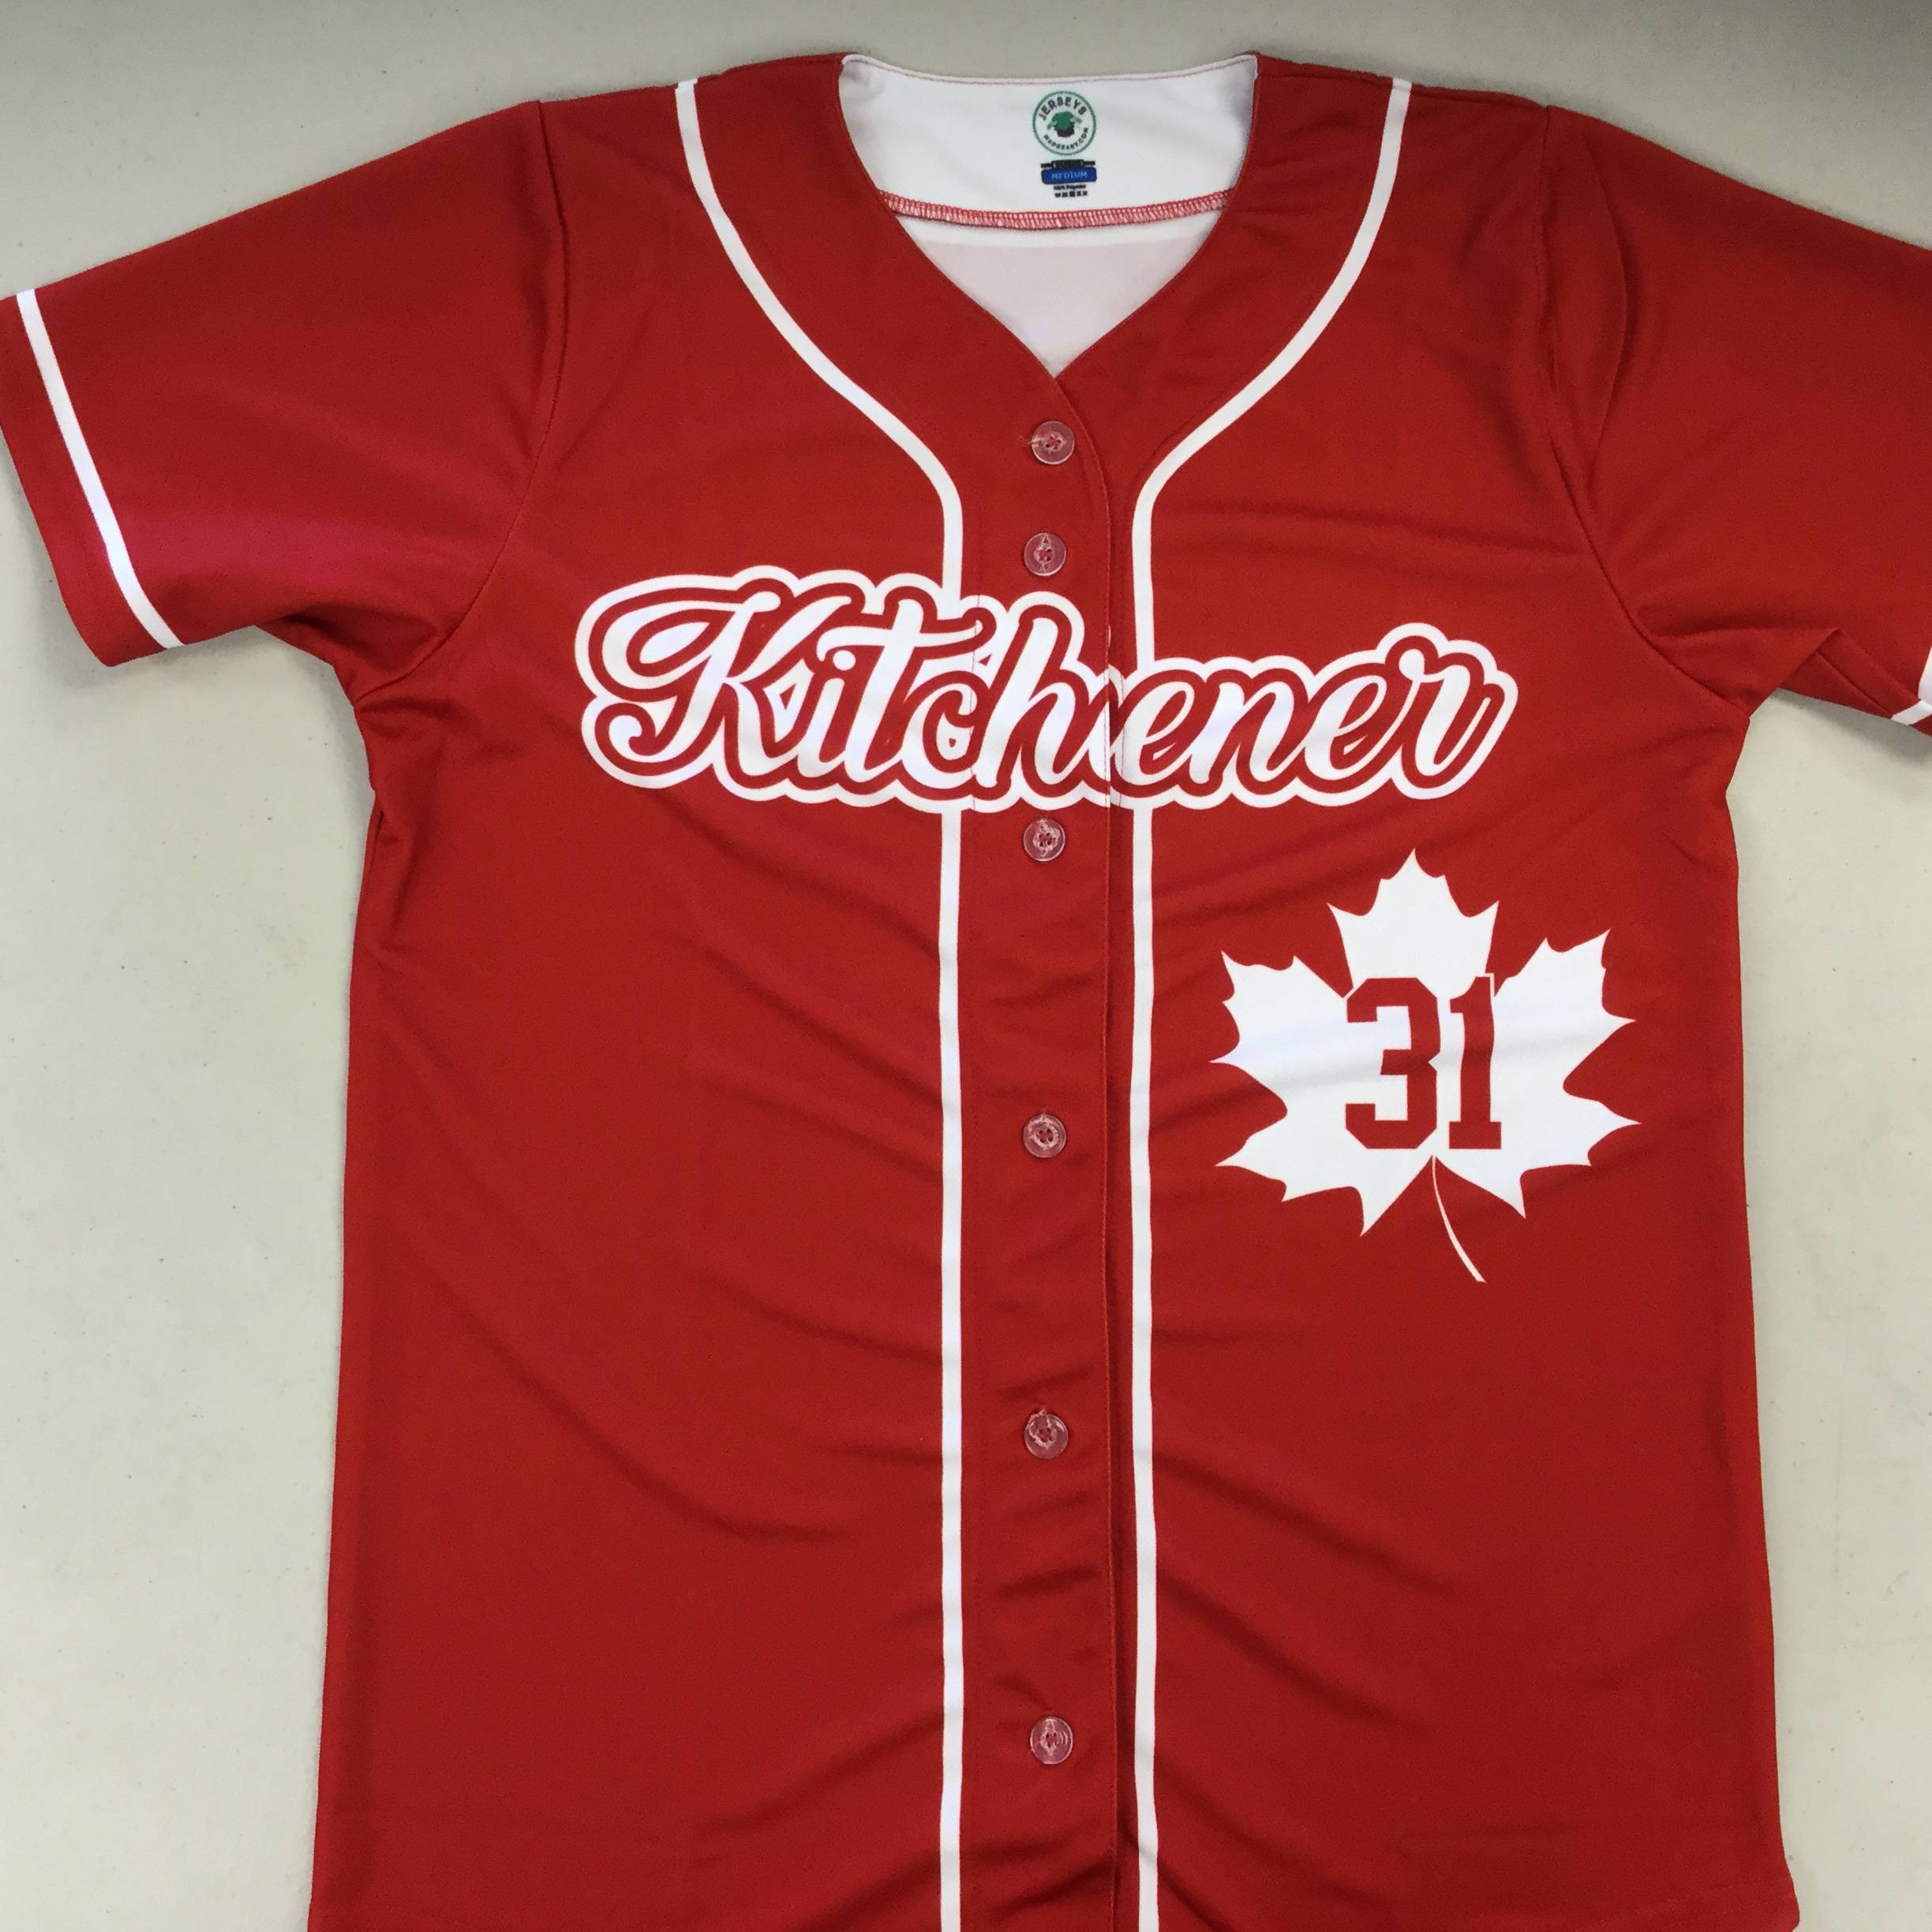 Custom Sublimated Full Button Baseball Jersey: Kitchener Klassics, Canada Day Special Edition Uniform